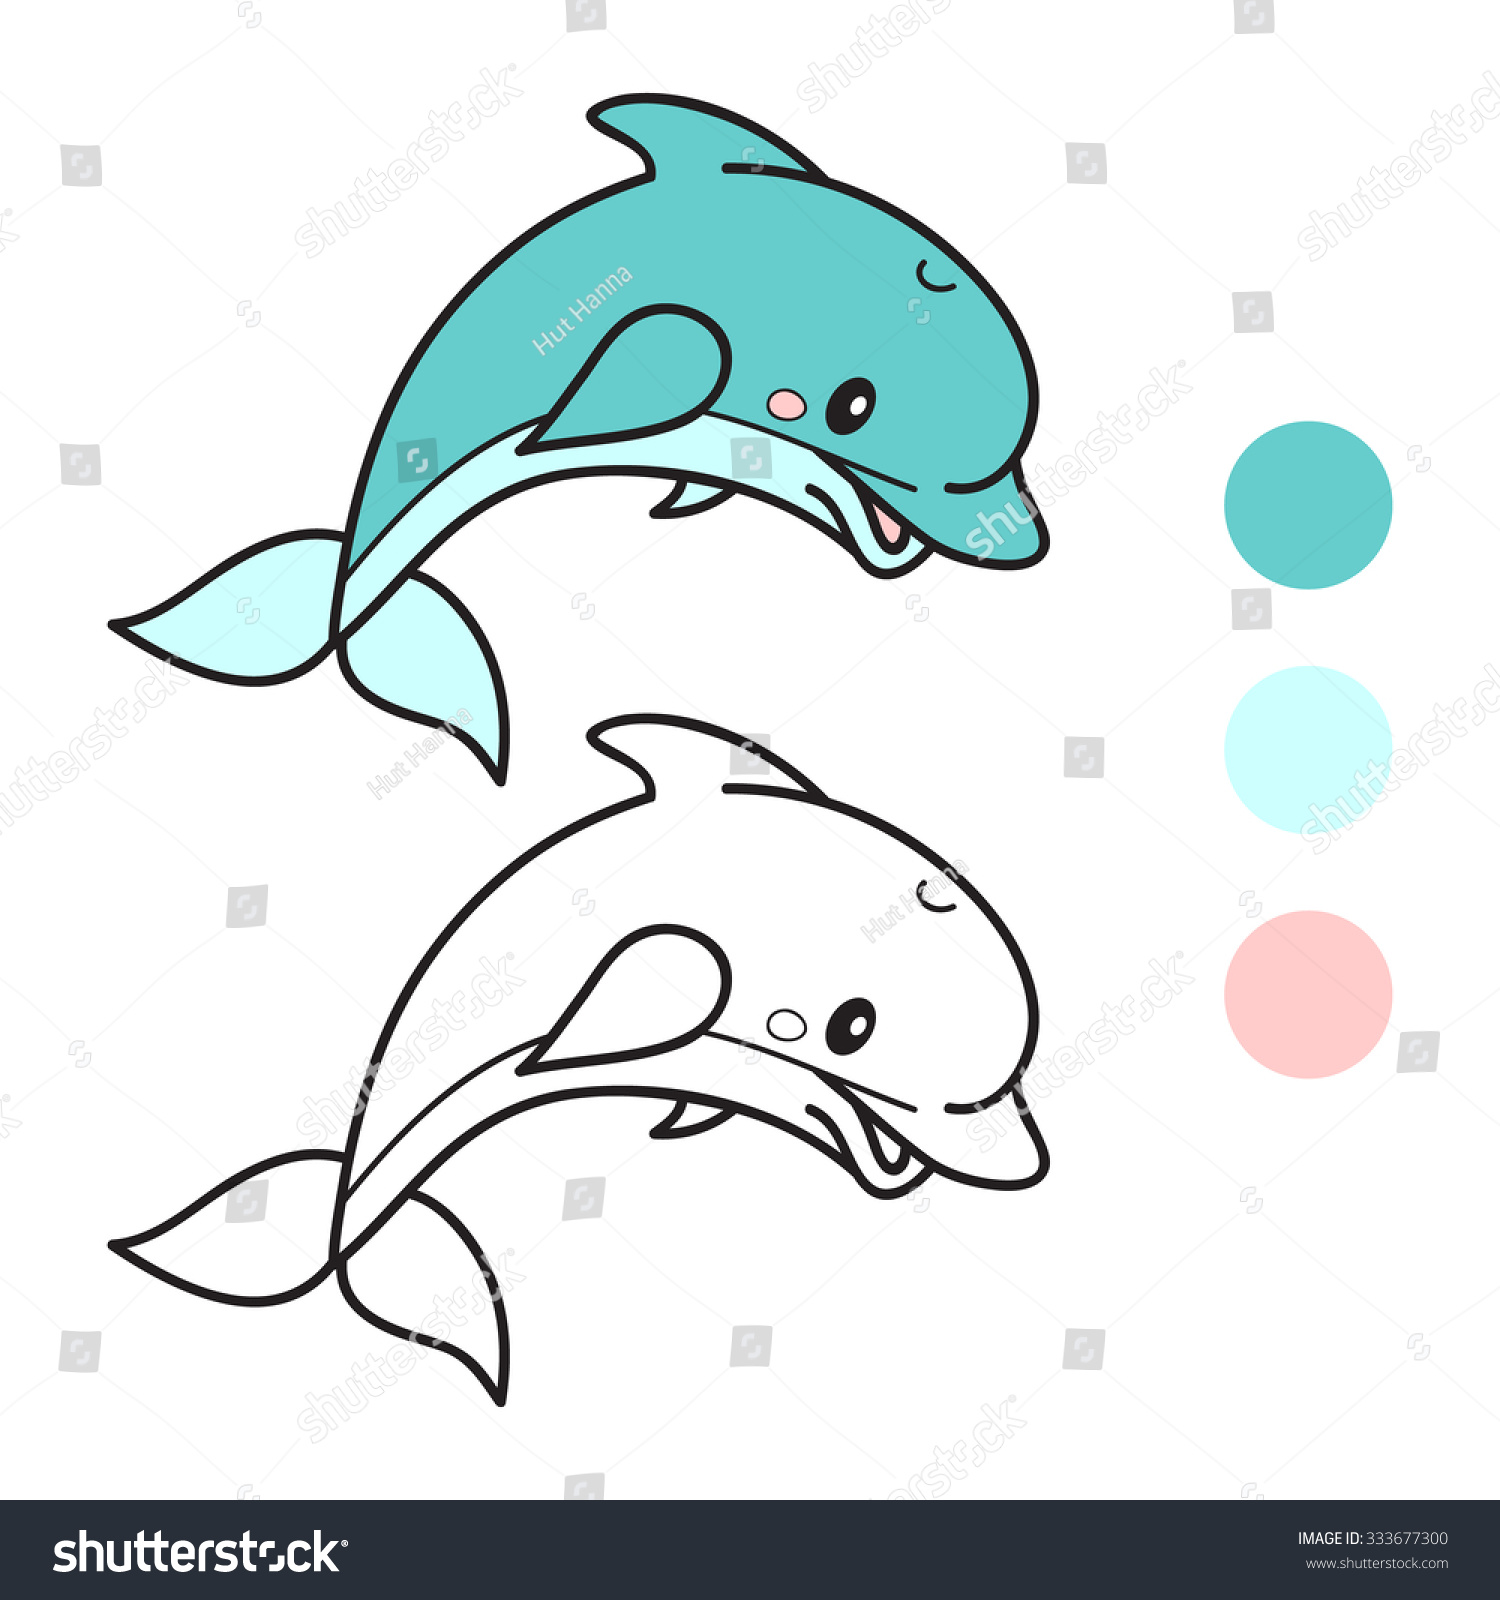 Dolphin Coloring Book Page Cartoon Vector Stock Vector (Royalty Free ...